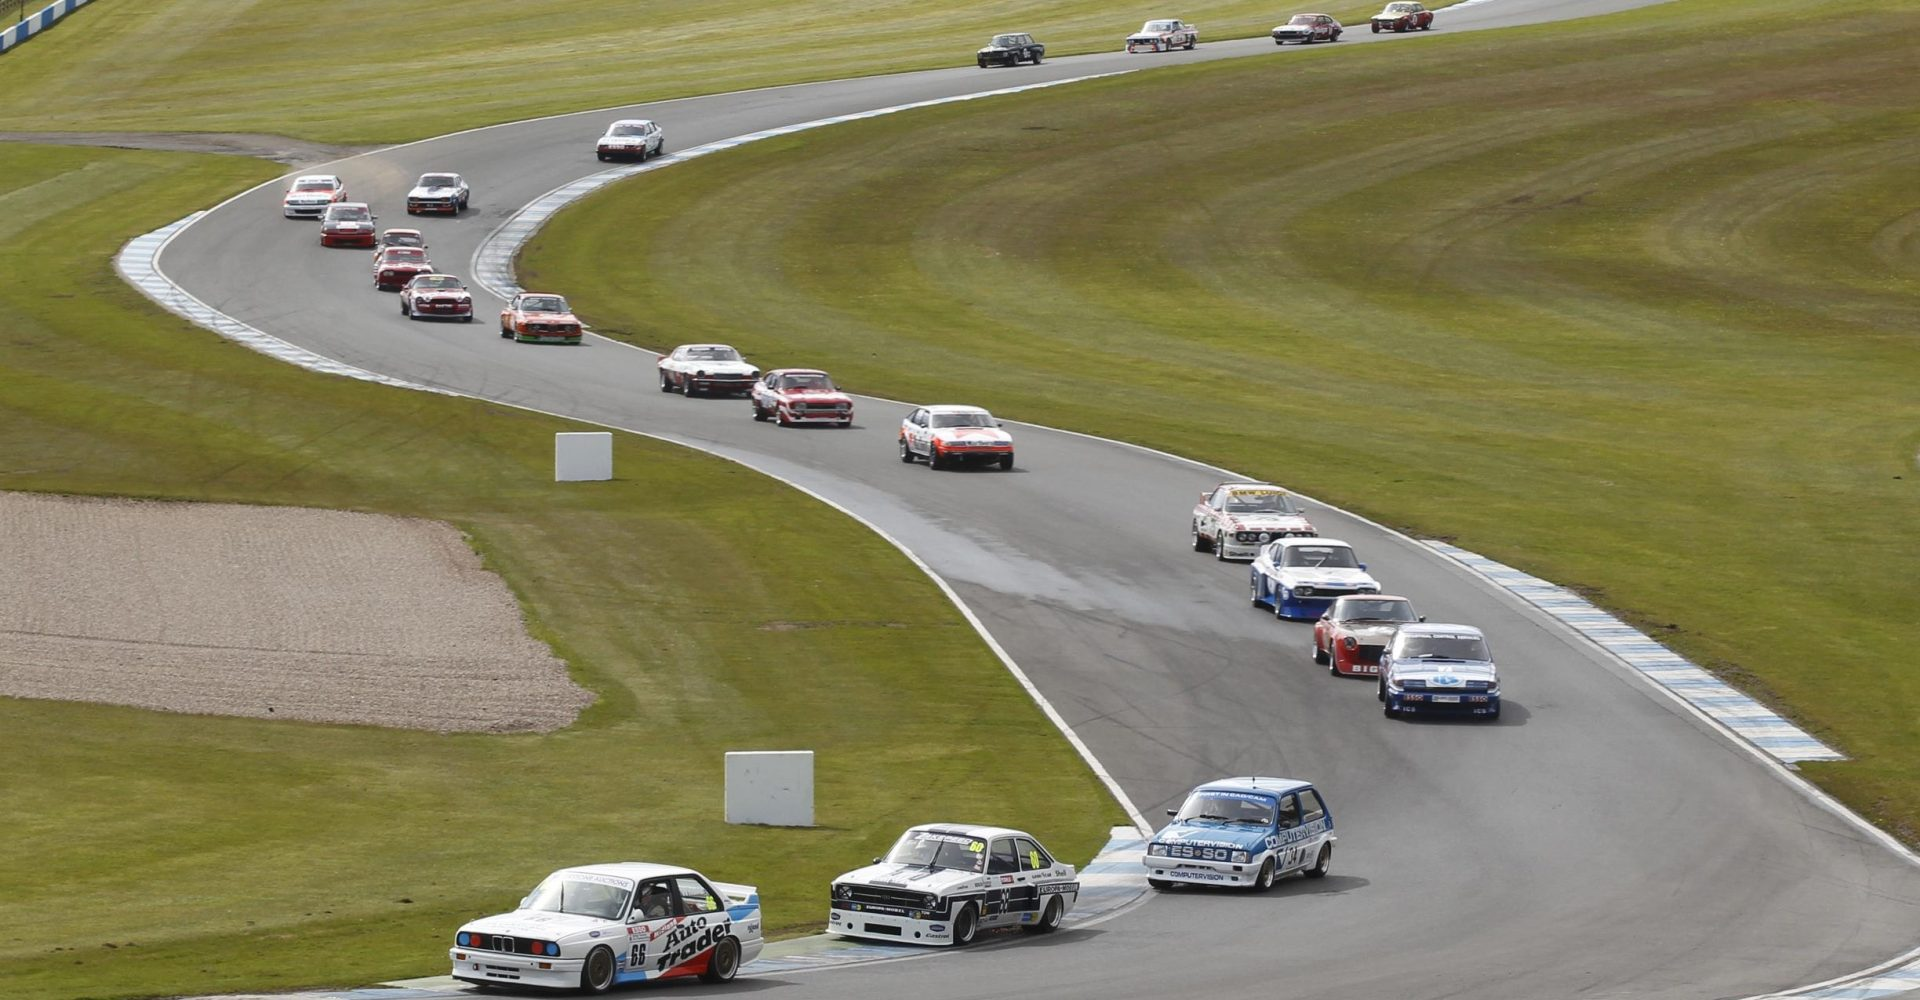 6 UK circuits perfect for a summer track day